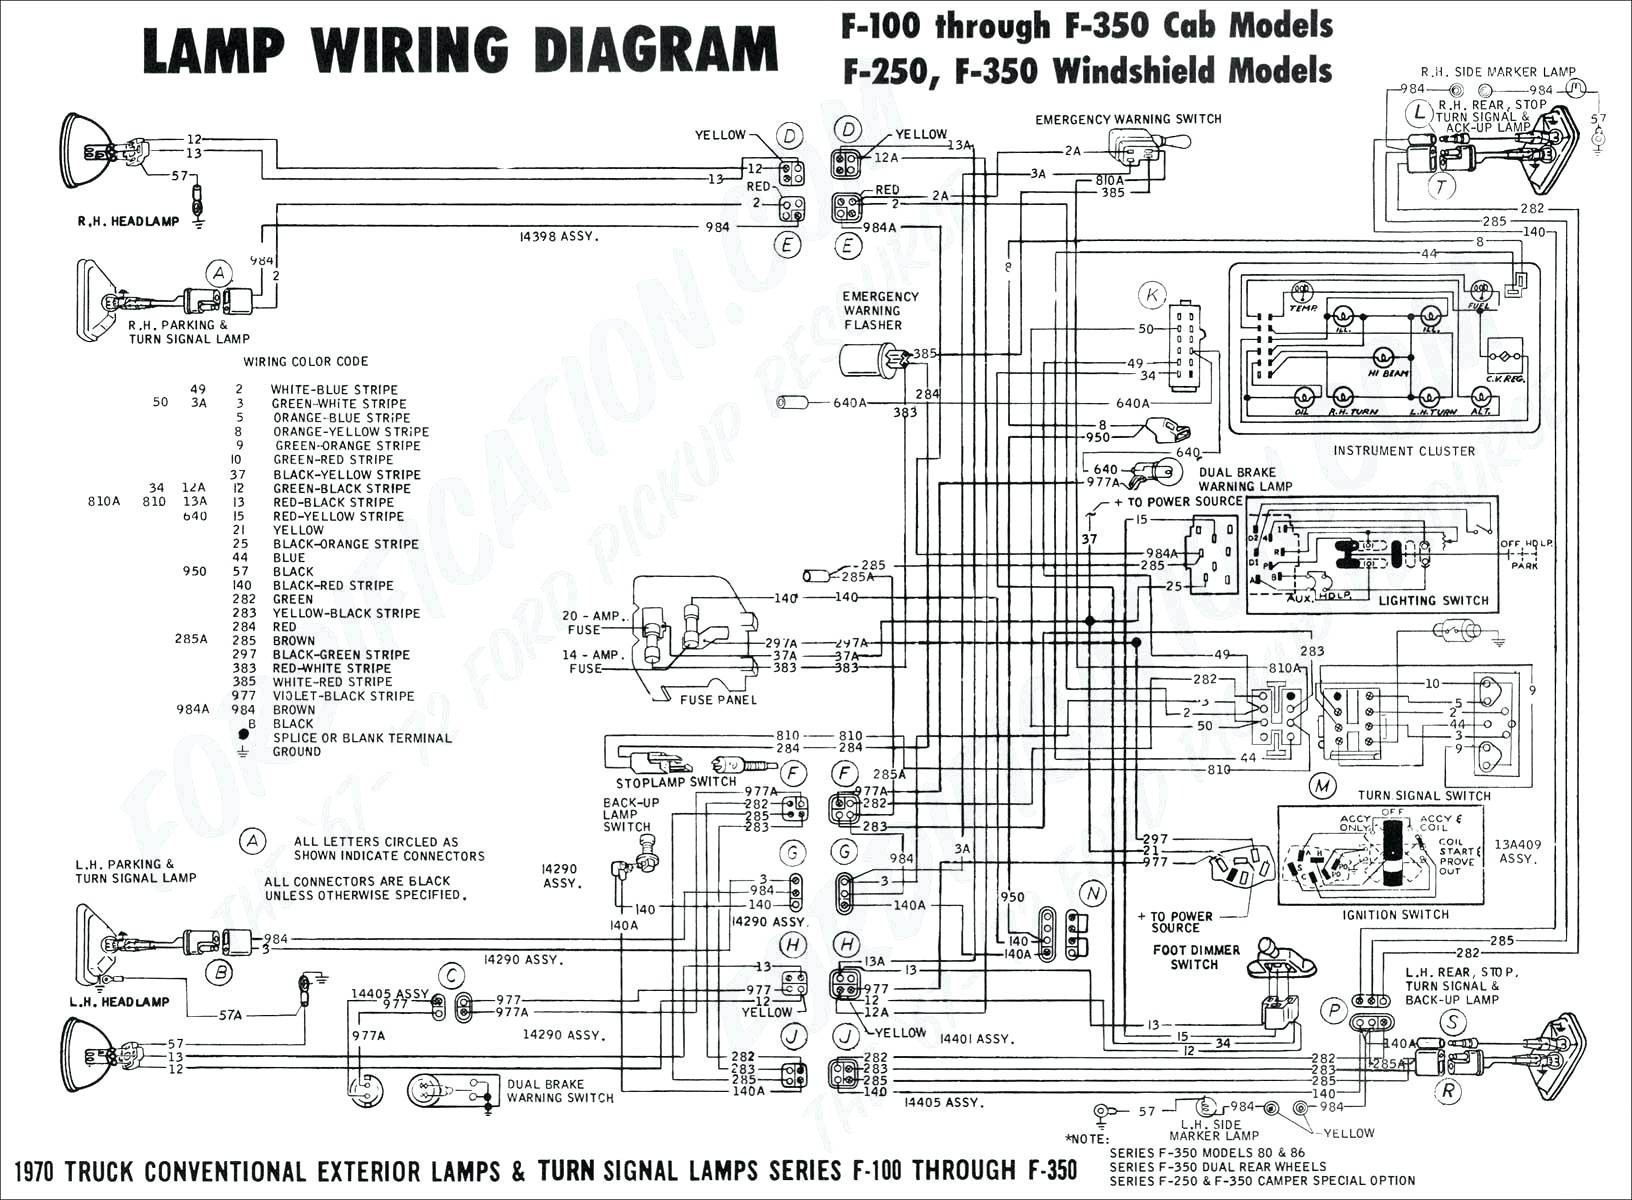 Tow Vehicle Wiring Diagram New Tow Vehicle Wiring Diagram Recent Wiring Diagram For Car Trailer New